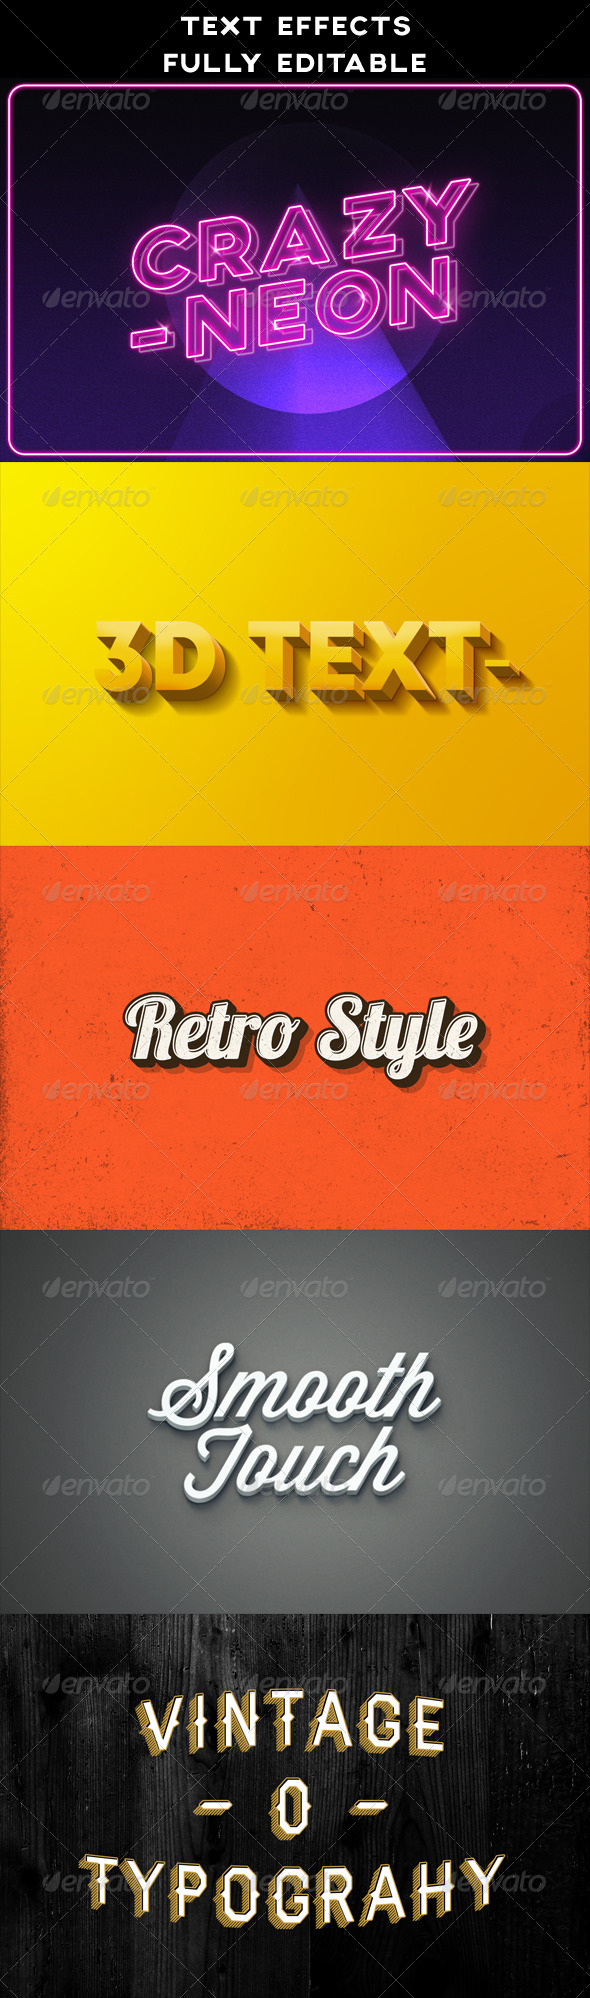 GraphicRiver Text Effects Vintage 3D Retro Neon 8485886